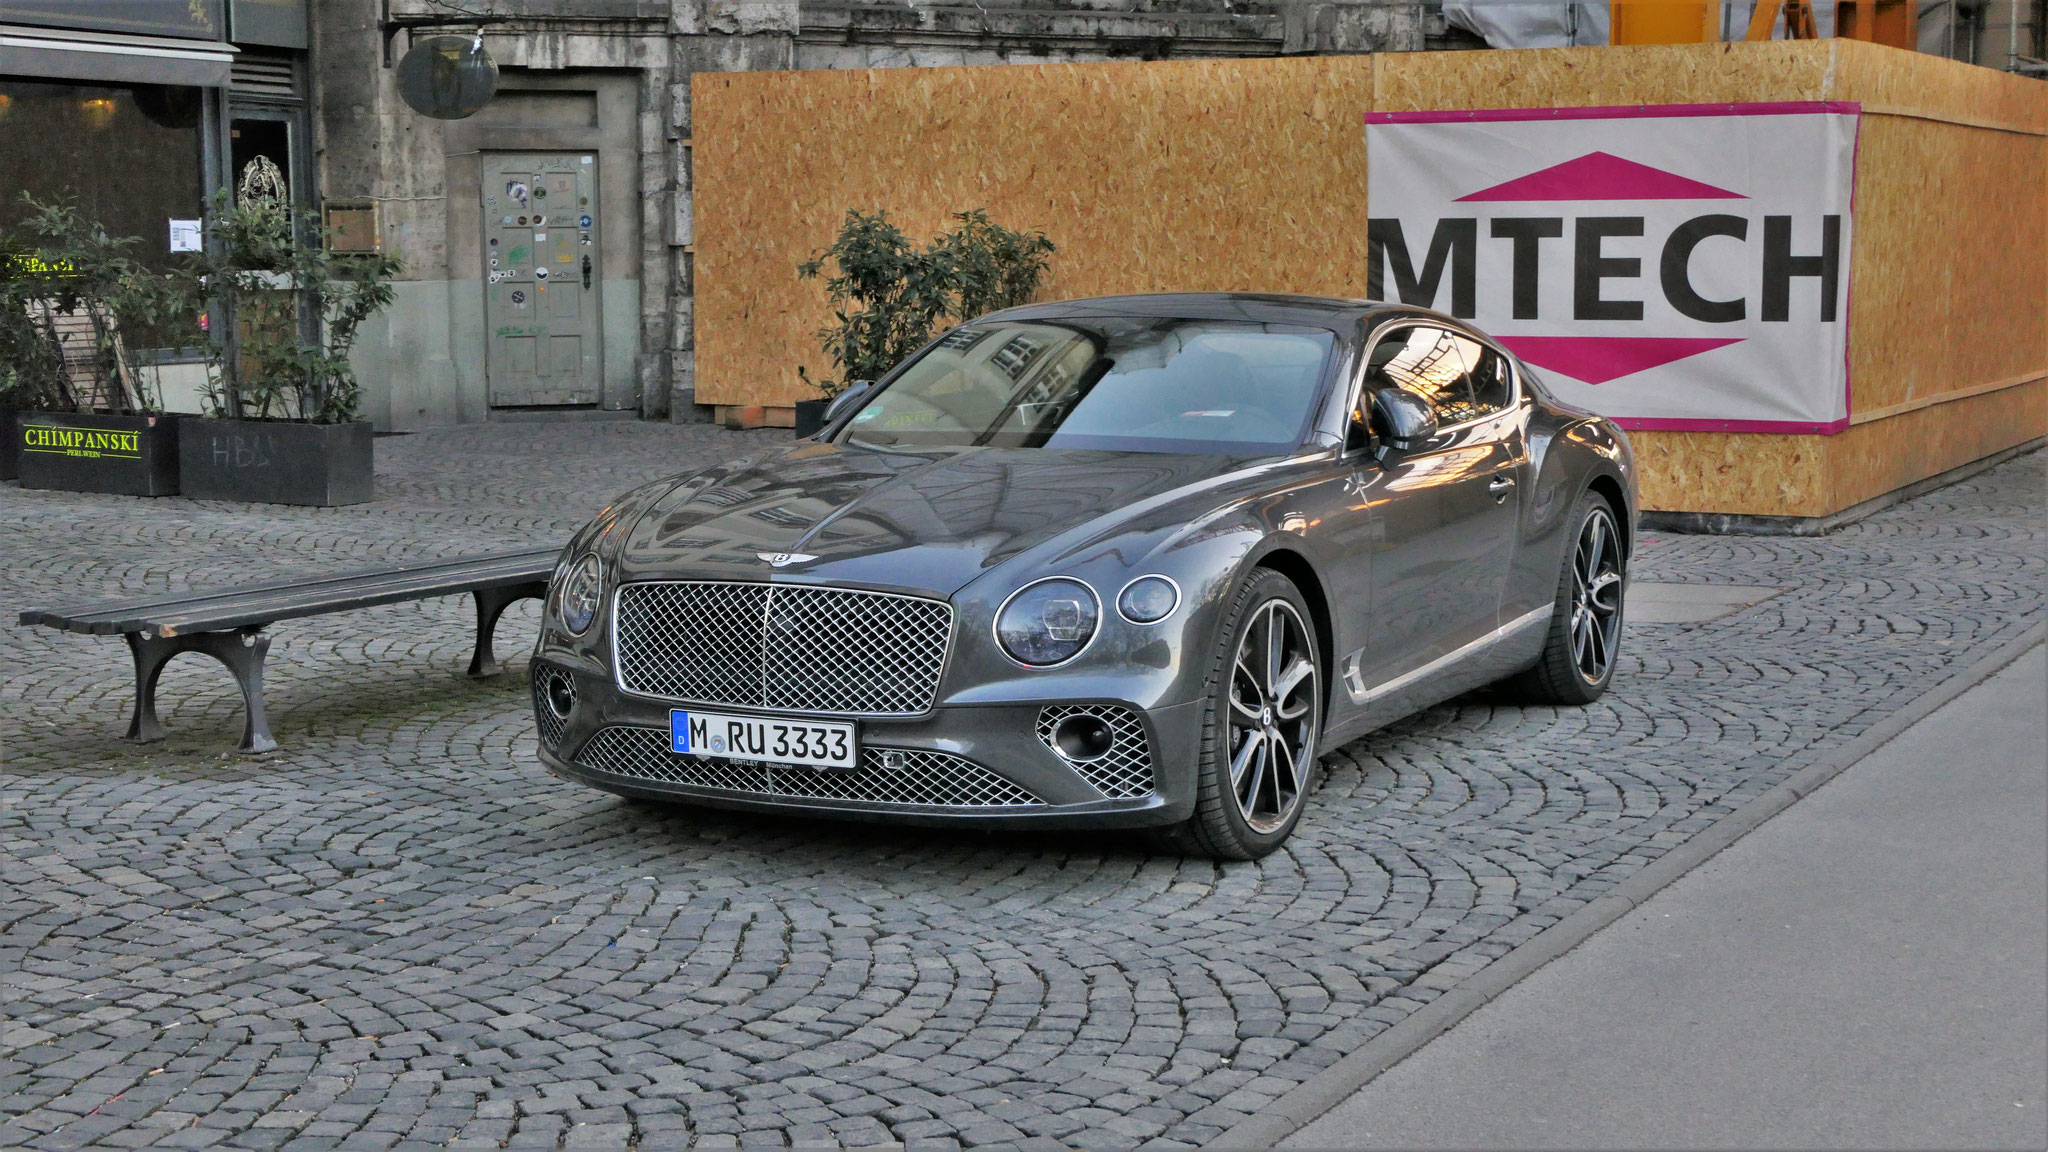 Bentley Continental GT - M-RU-3333